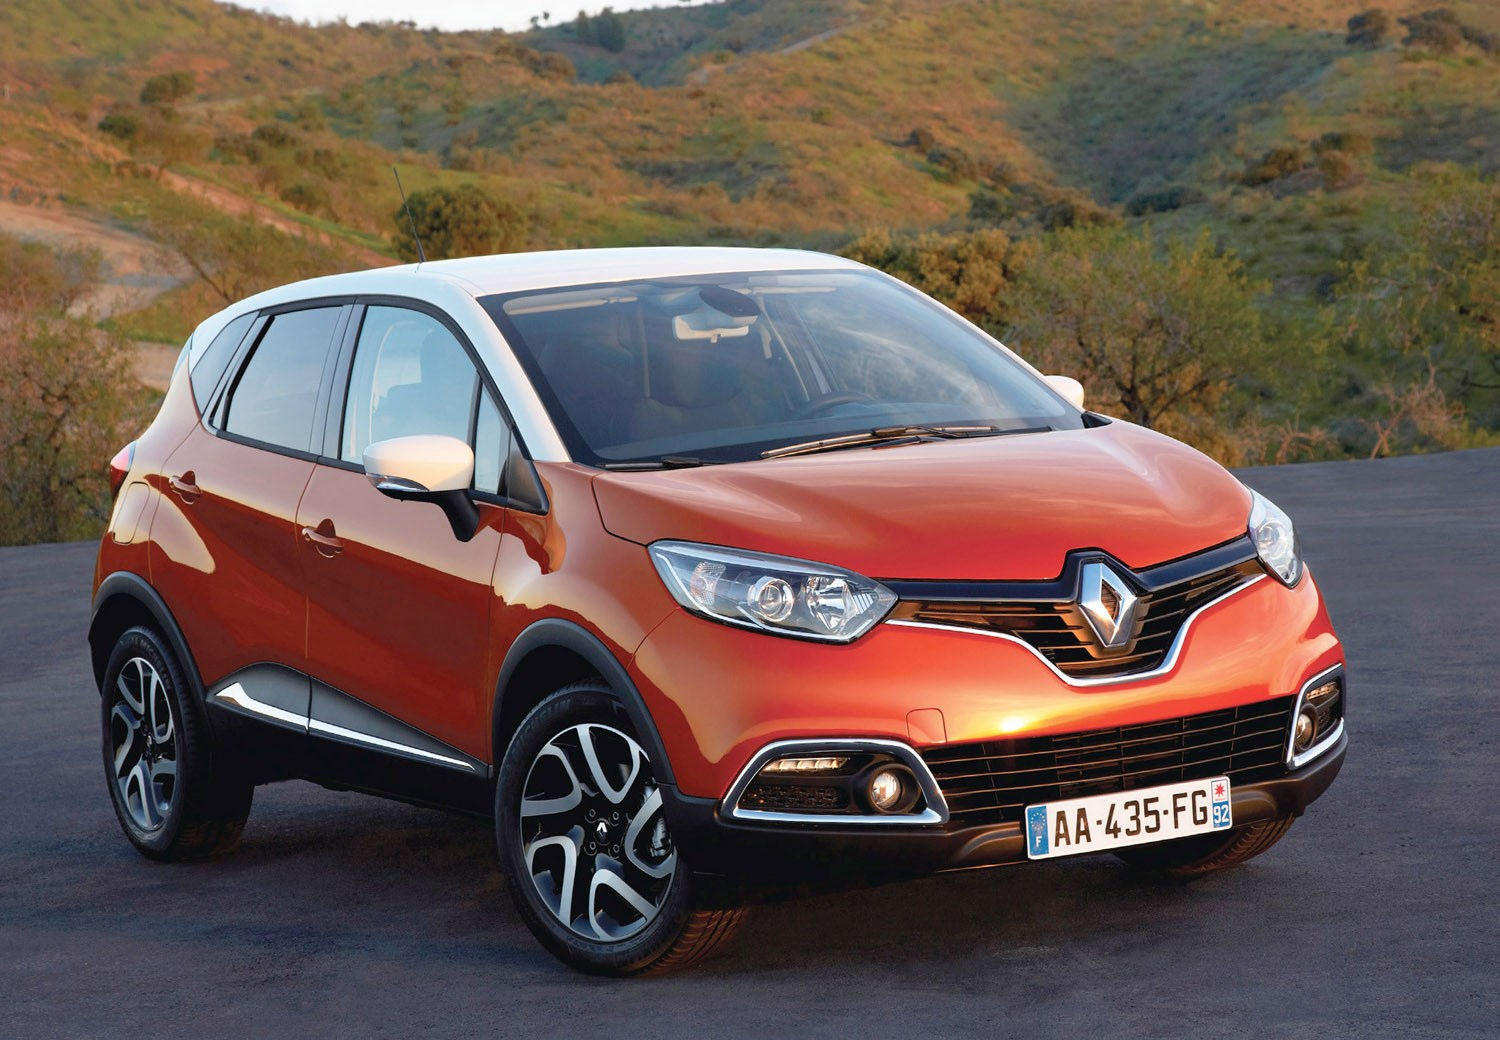 renault captur 4x4 review 2013 parkers. Black Bedroom Furniture Sets. Home Design Ideas